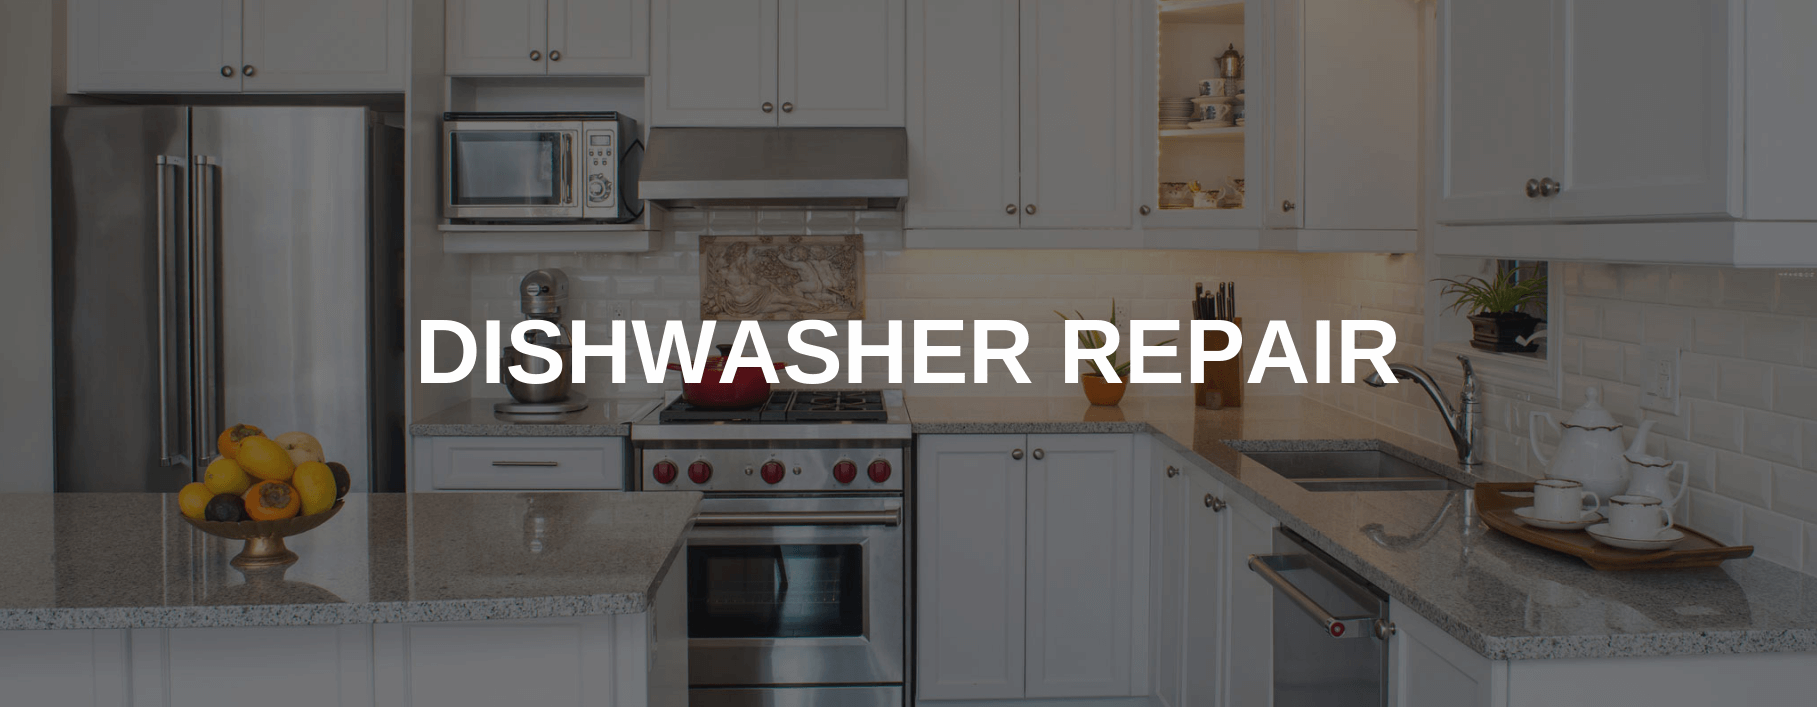 dishwasher repair provo